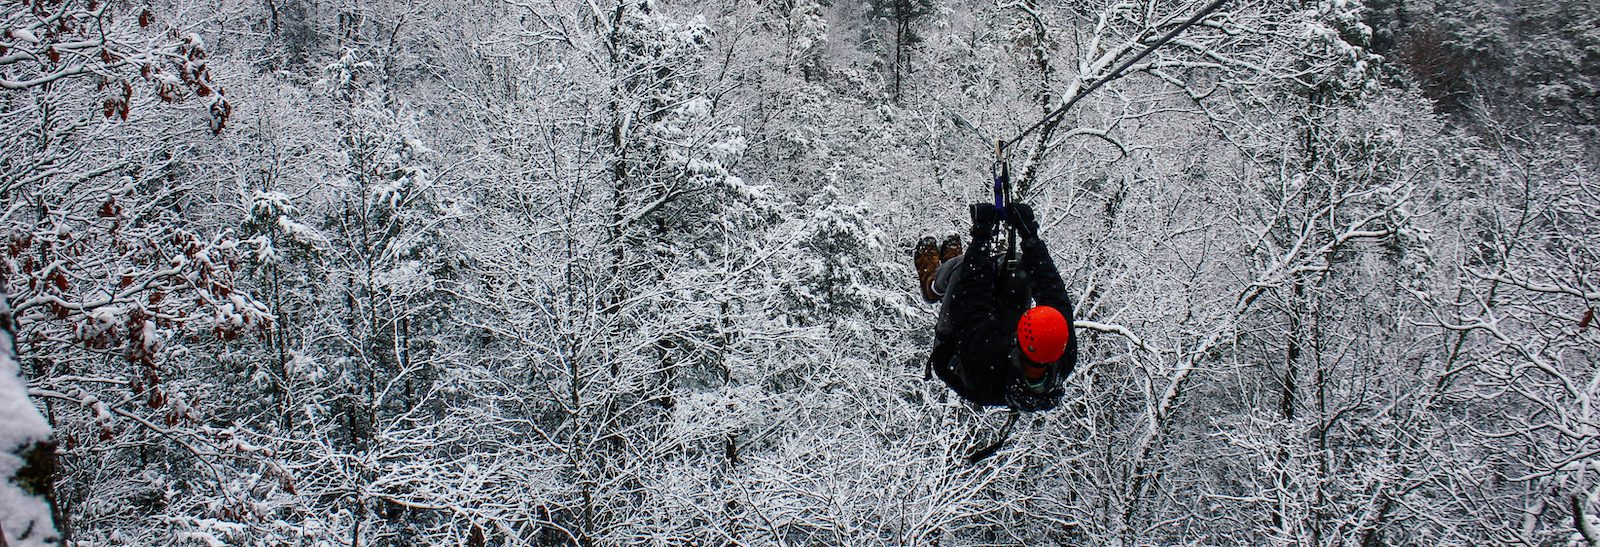 4 Reasons to Try Our Smoky Mountain Ziplines in the Winter